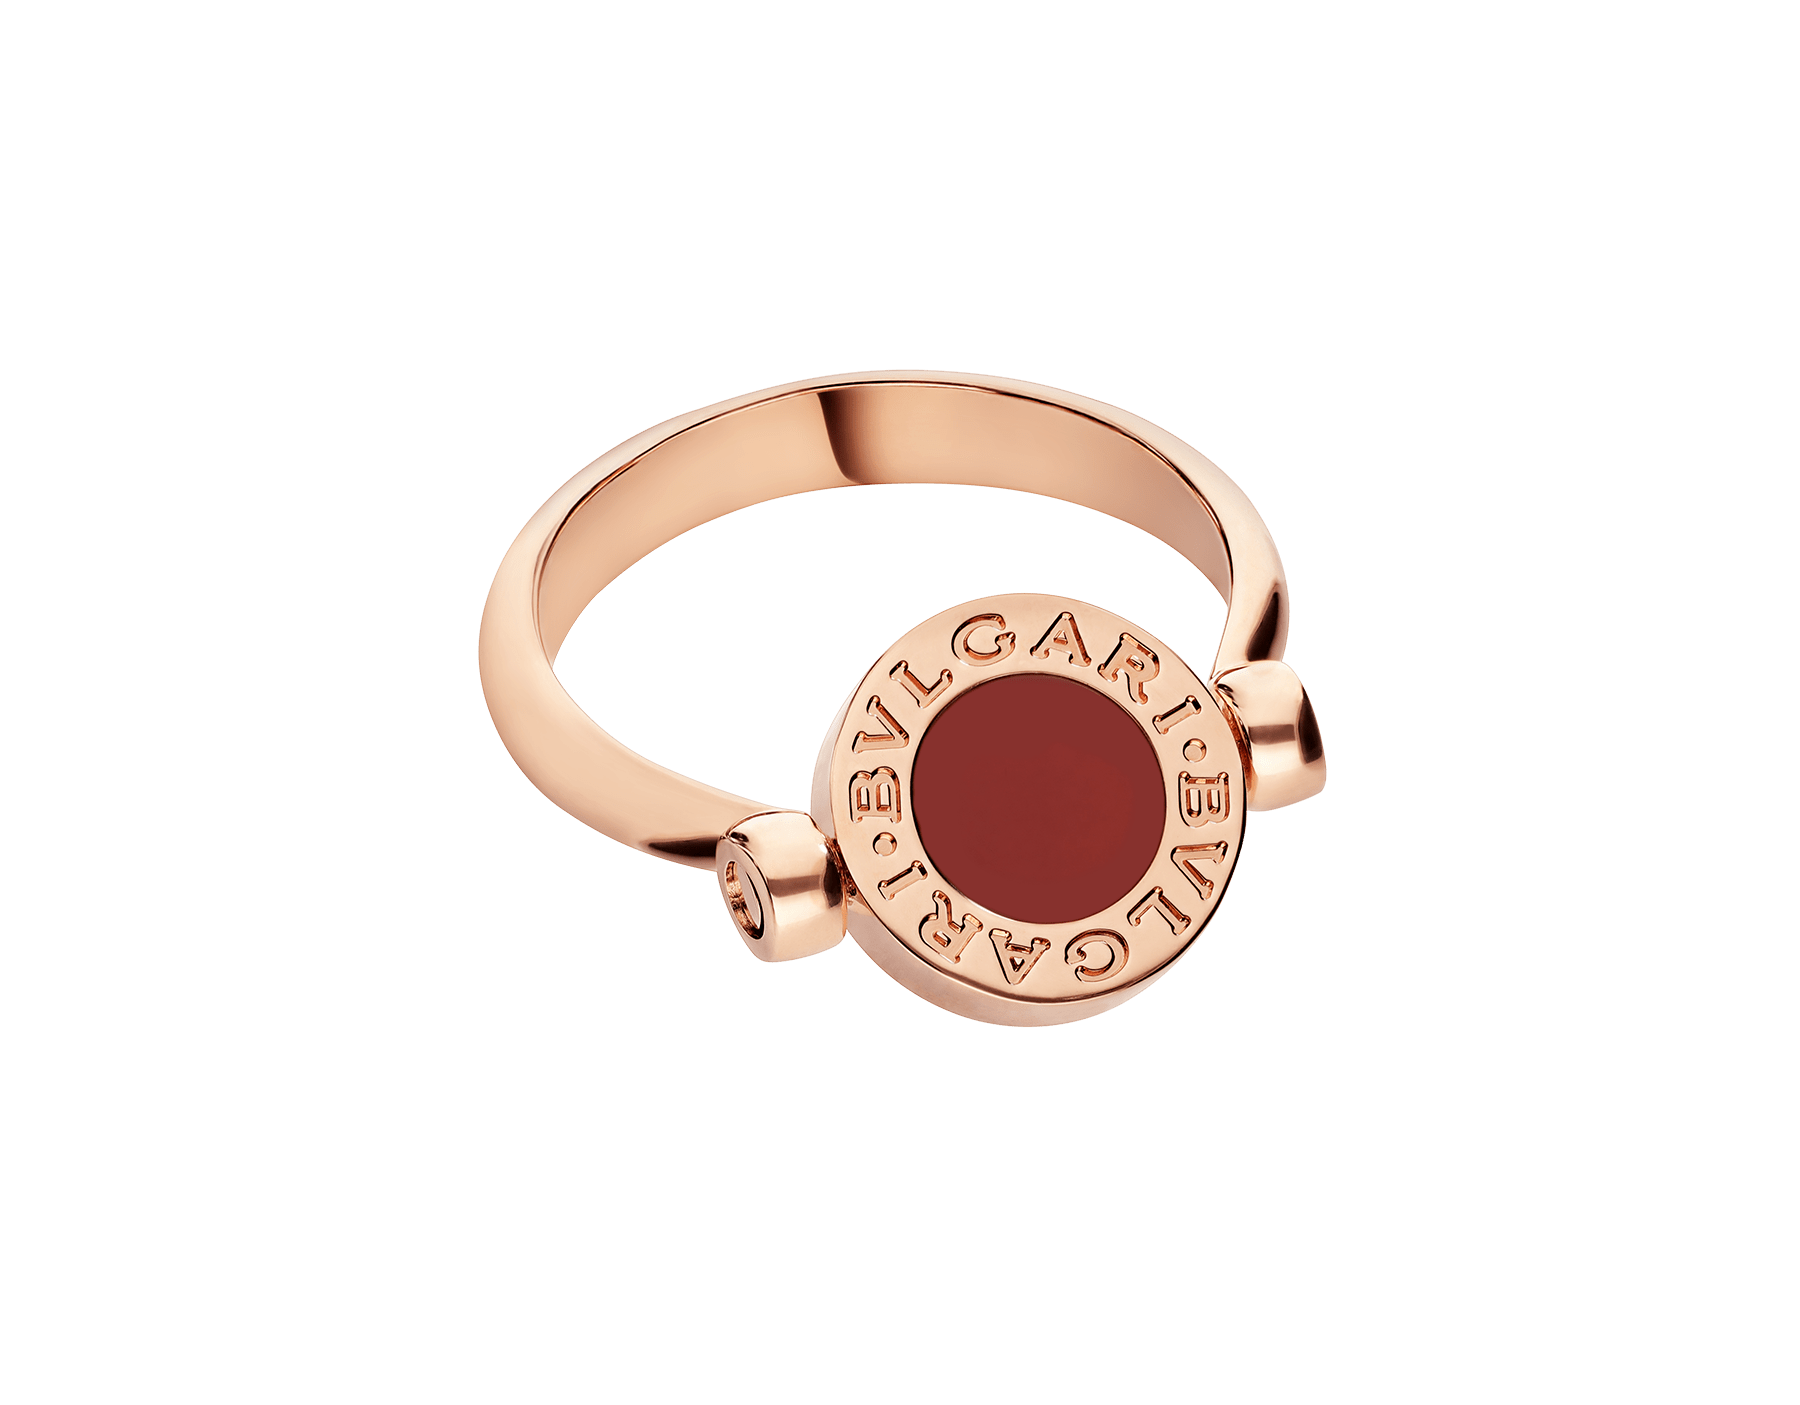 BVLGARI BVLGARI 18 kt rose gold flip ring set with mother-of-pearl and carnelian elements AN858197 image 2